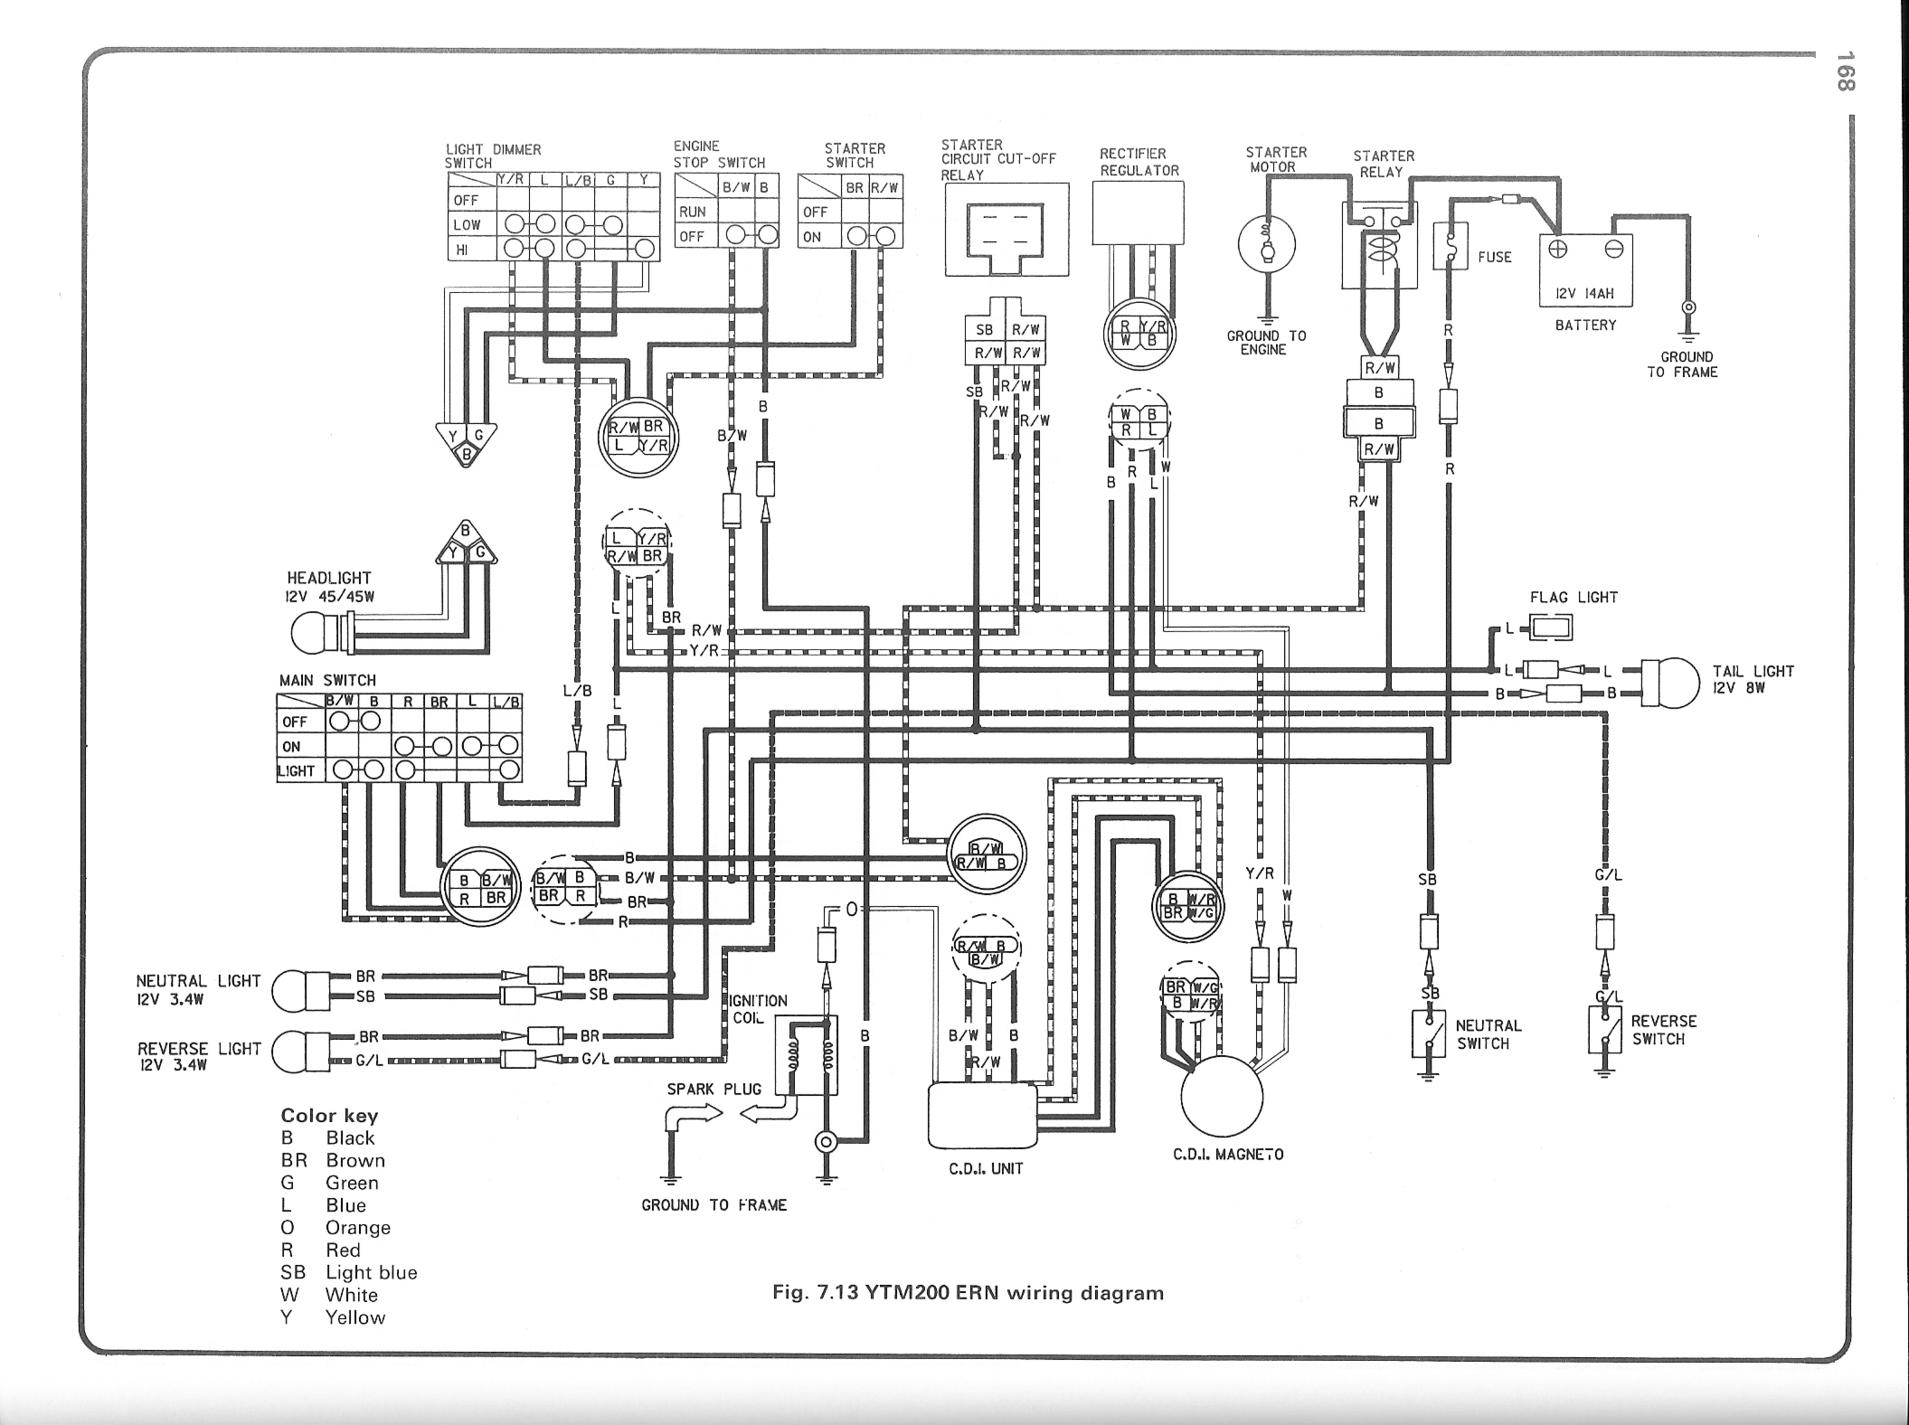 boss snow plow wiring schematic boss plow wiring diagram boss discover your wiring diagram 1987 polaris trail boss 250 wiring diagram